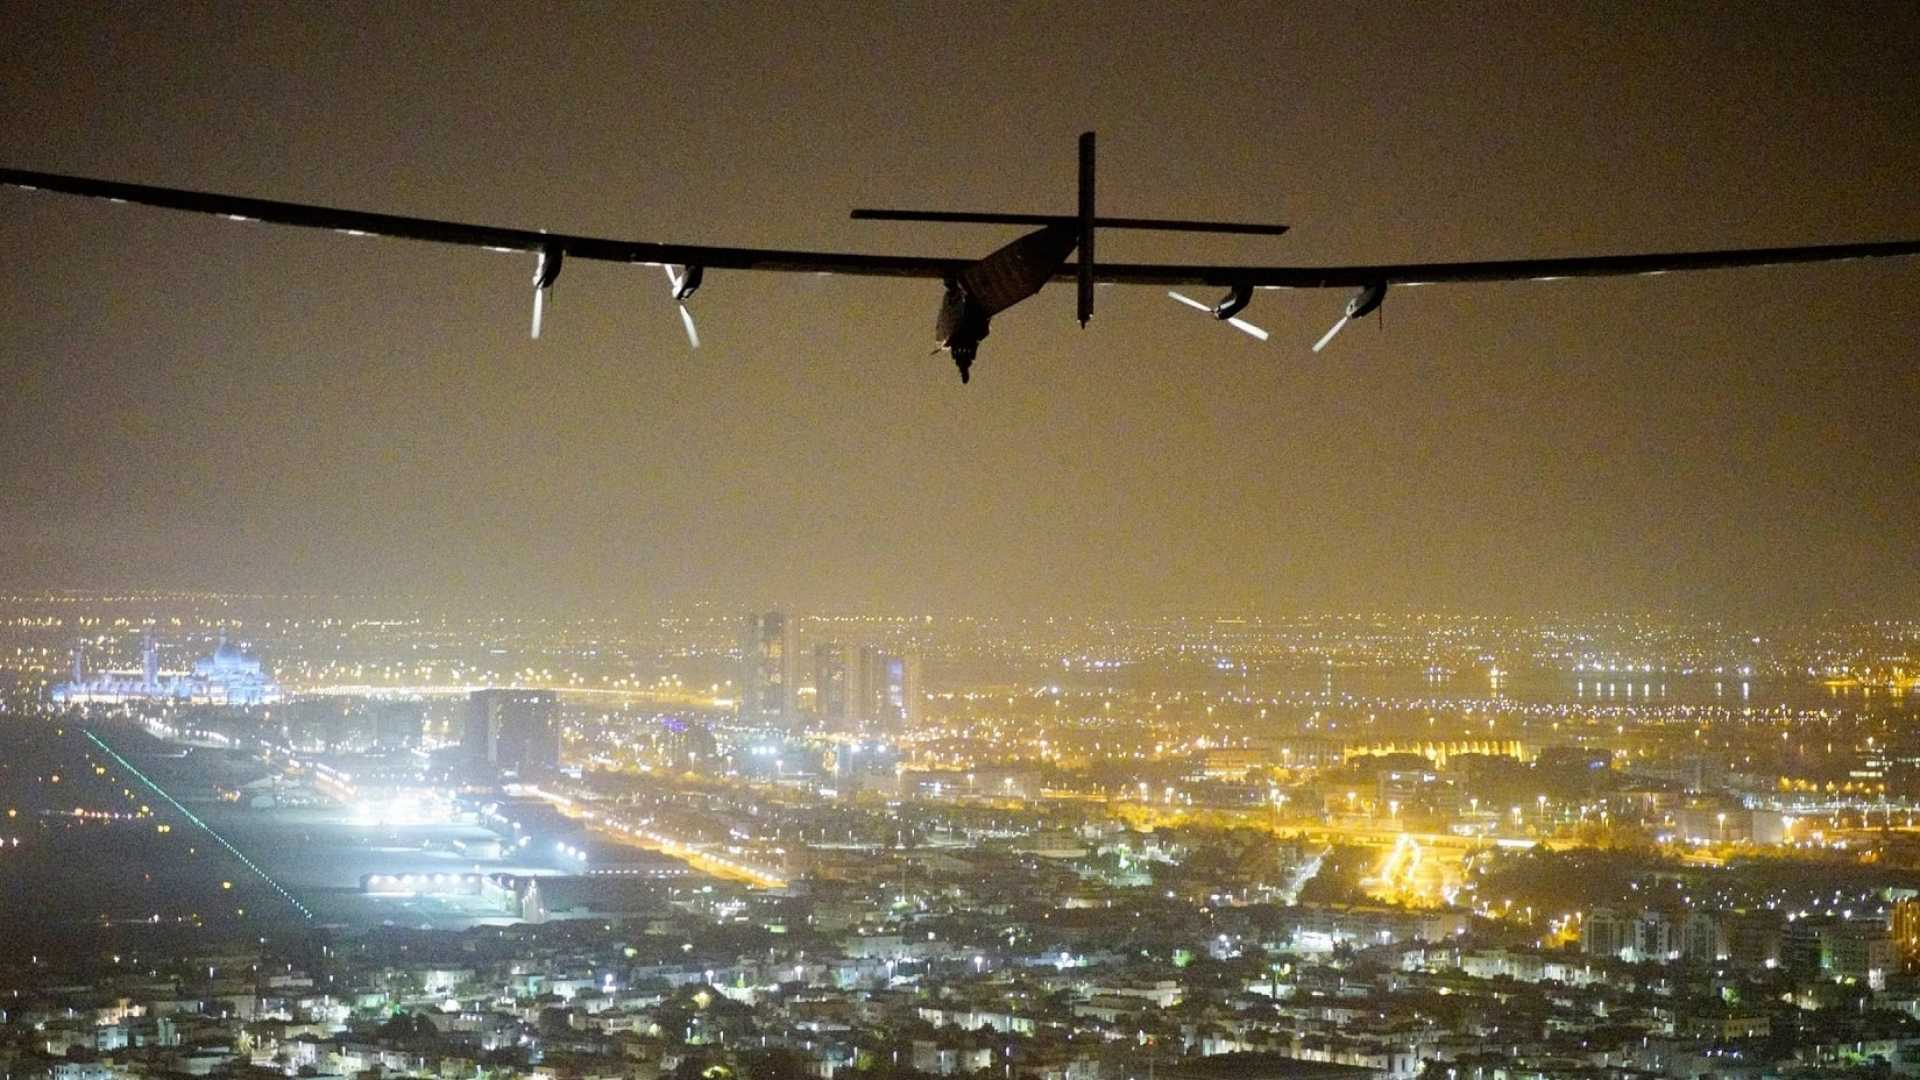 This Solar-Powered Plane Has Something Incredible Up Its Sleeves for Businesses